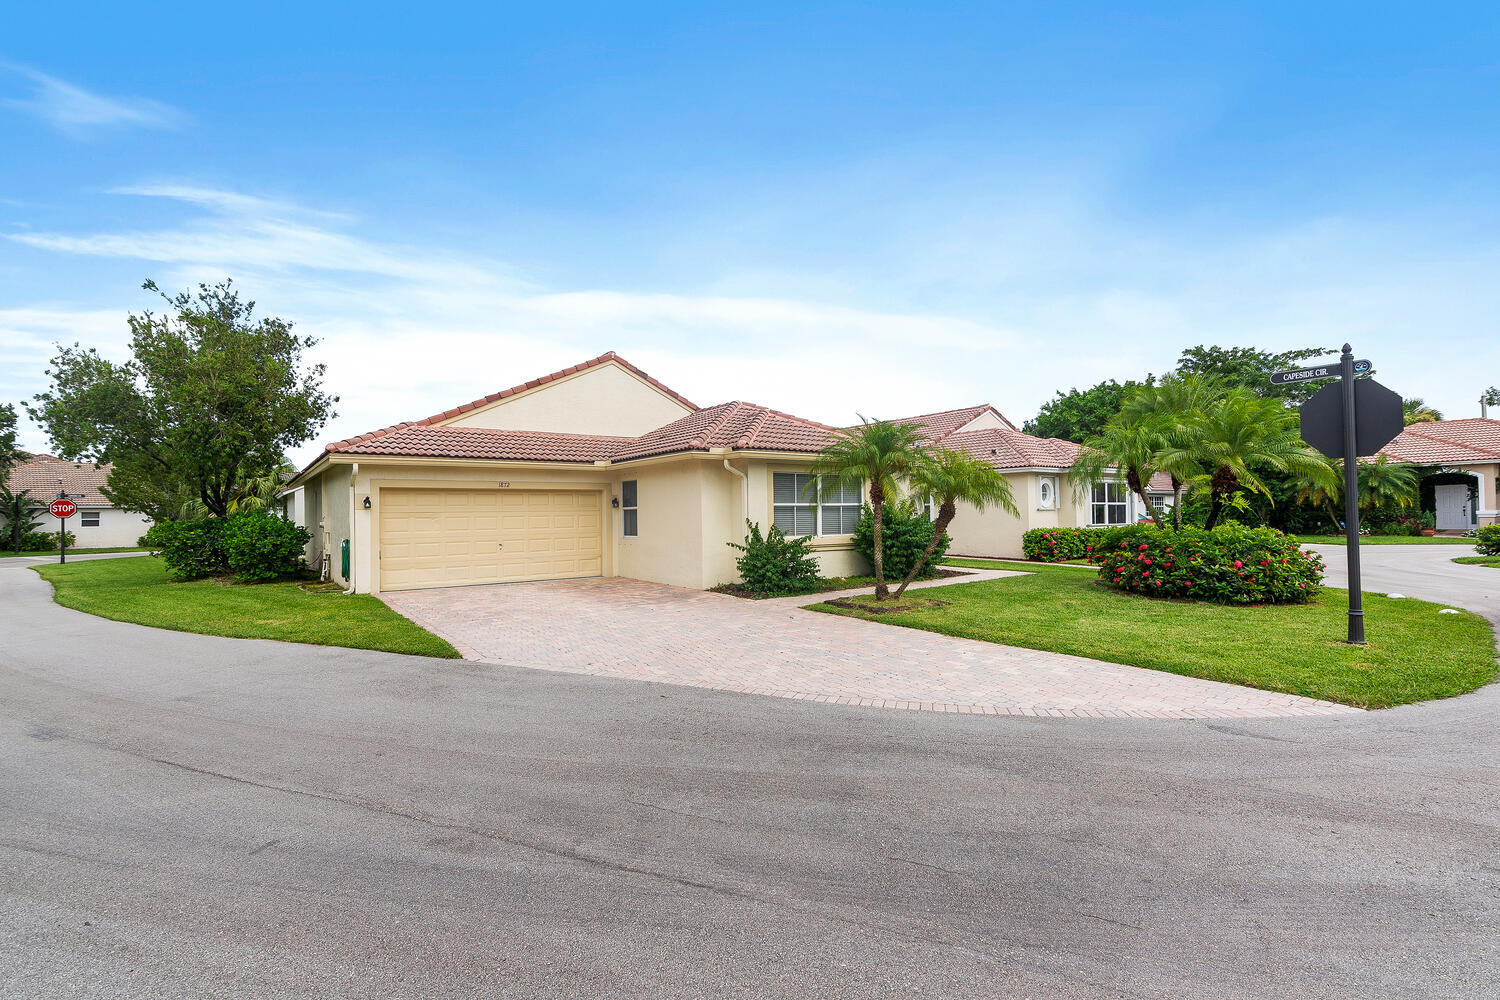 1872  Capeside Circle  For Sale 10741903, FL